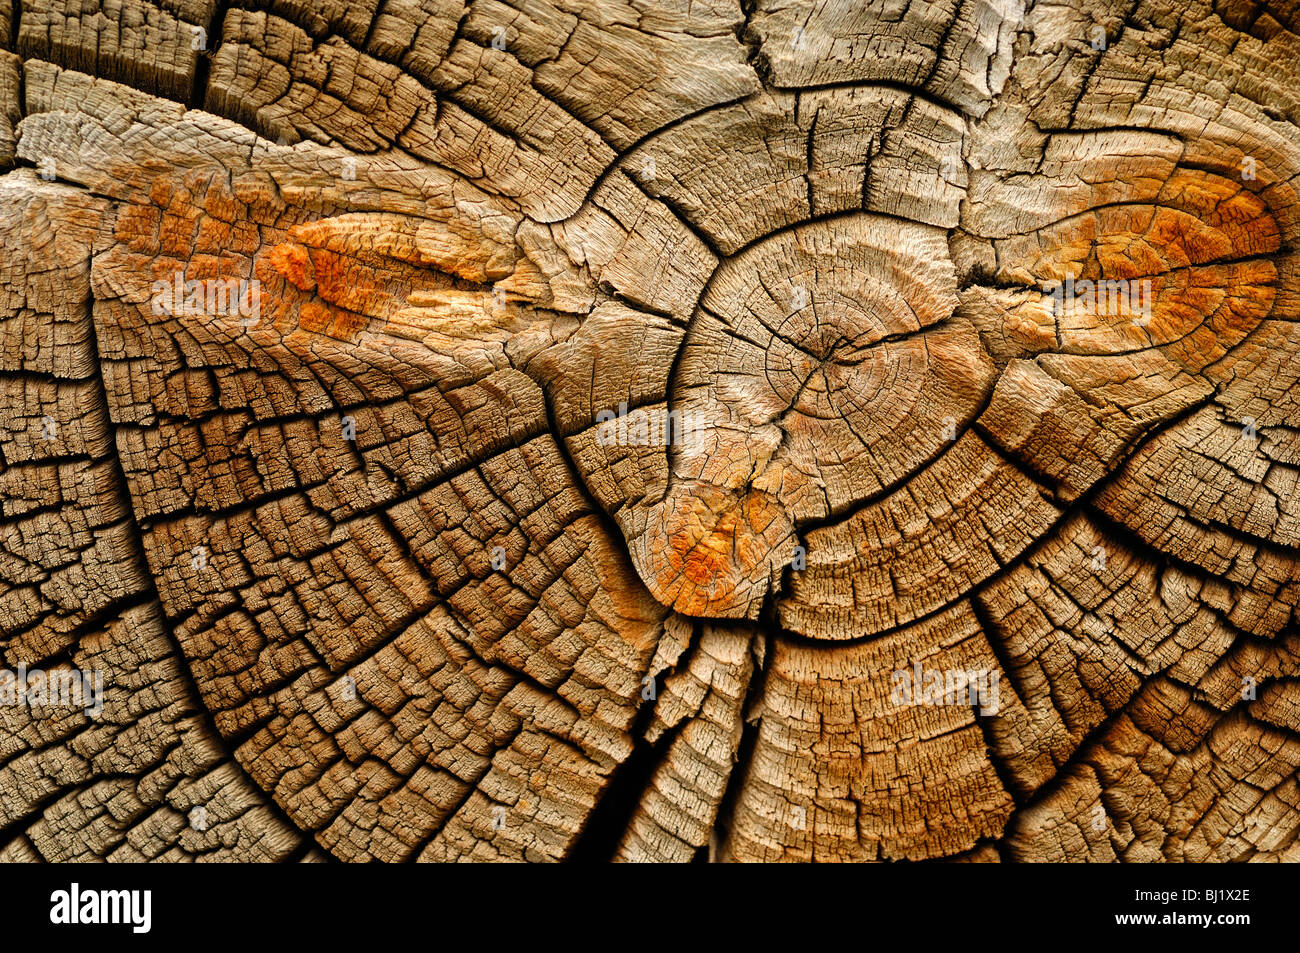 Close up of a log, part of the exterior of a log cabin at South Pass City, Wyoming, United States of America Stock Photo